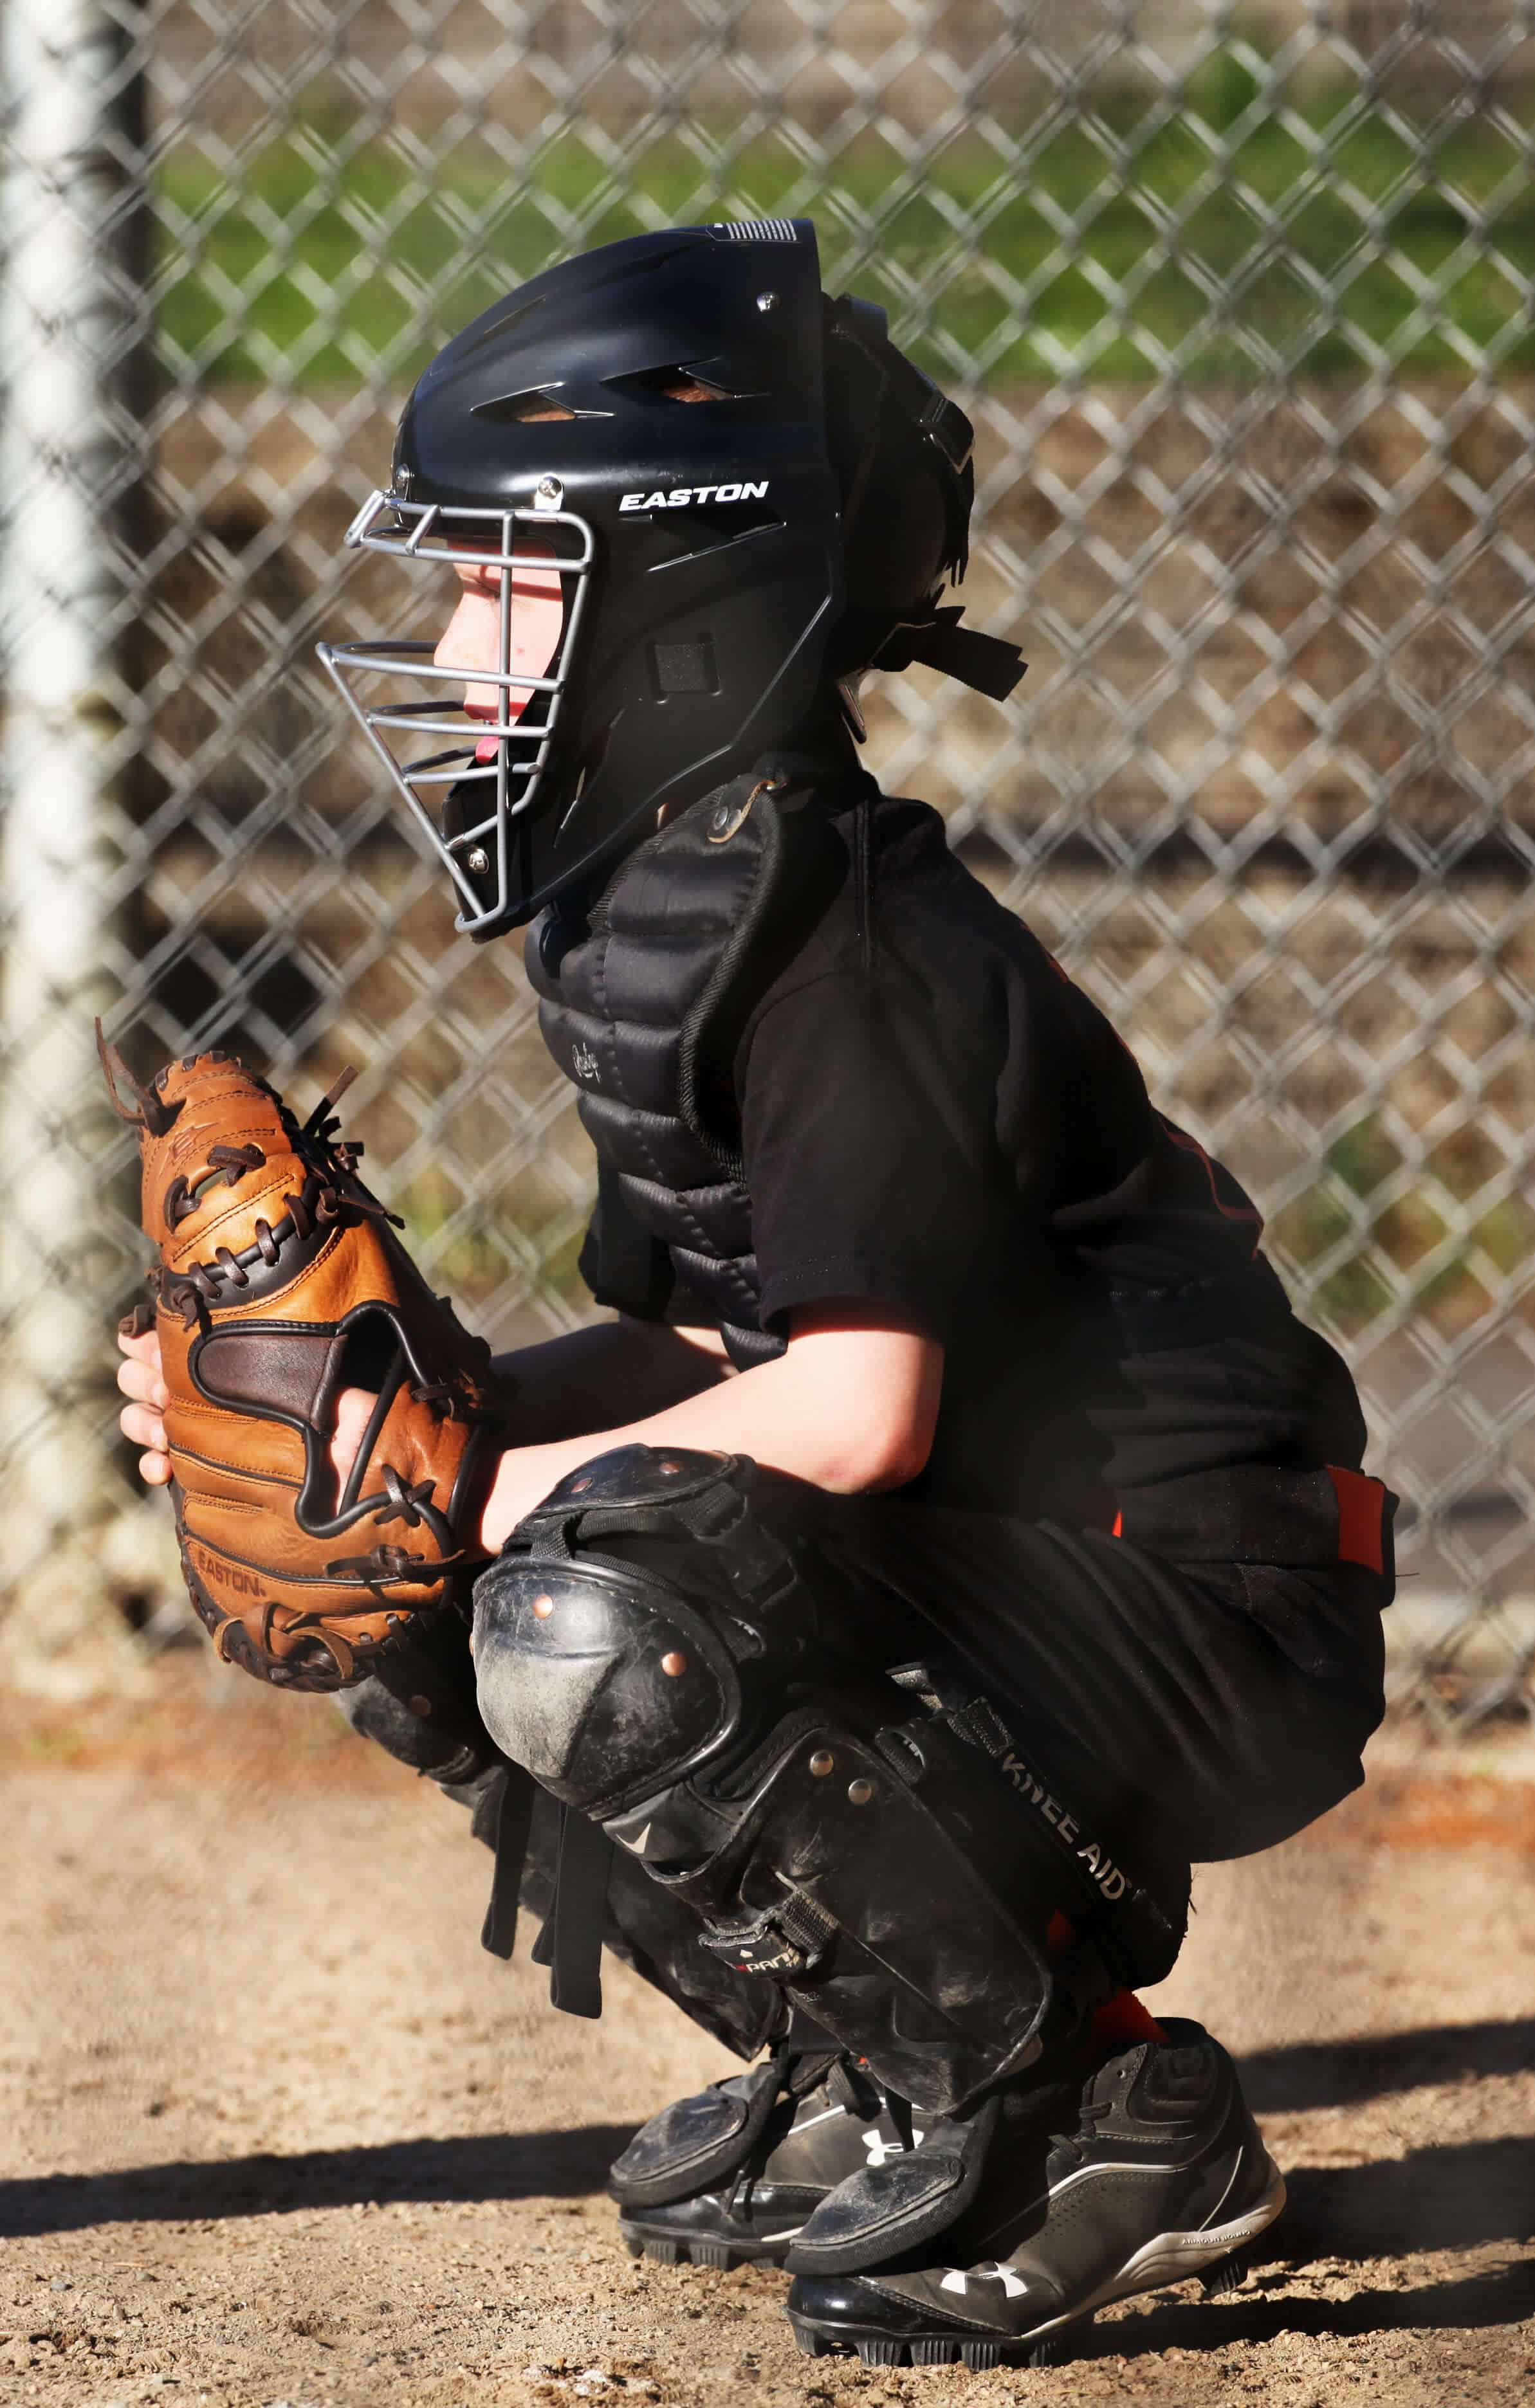 Youth Catcher in crouching position ready to catch the pitch